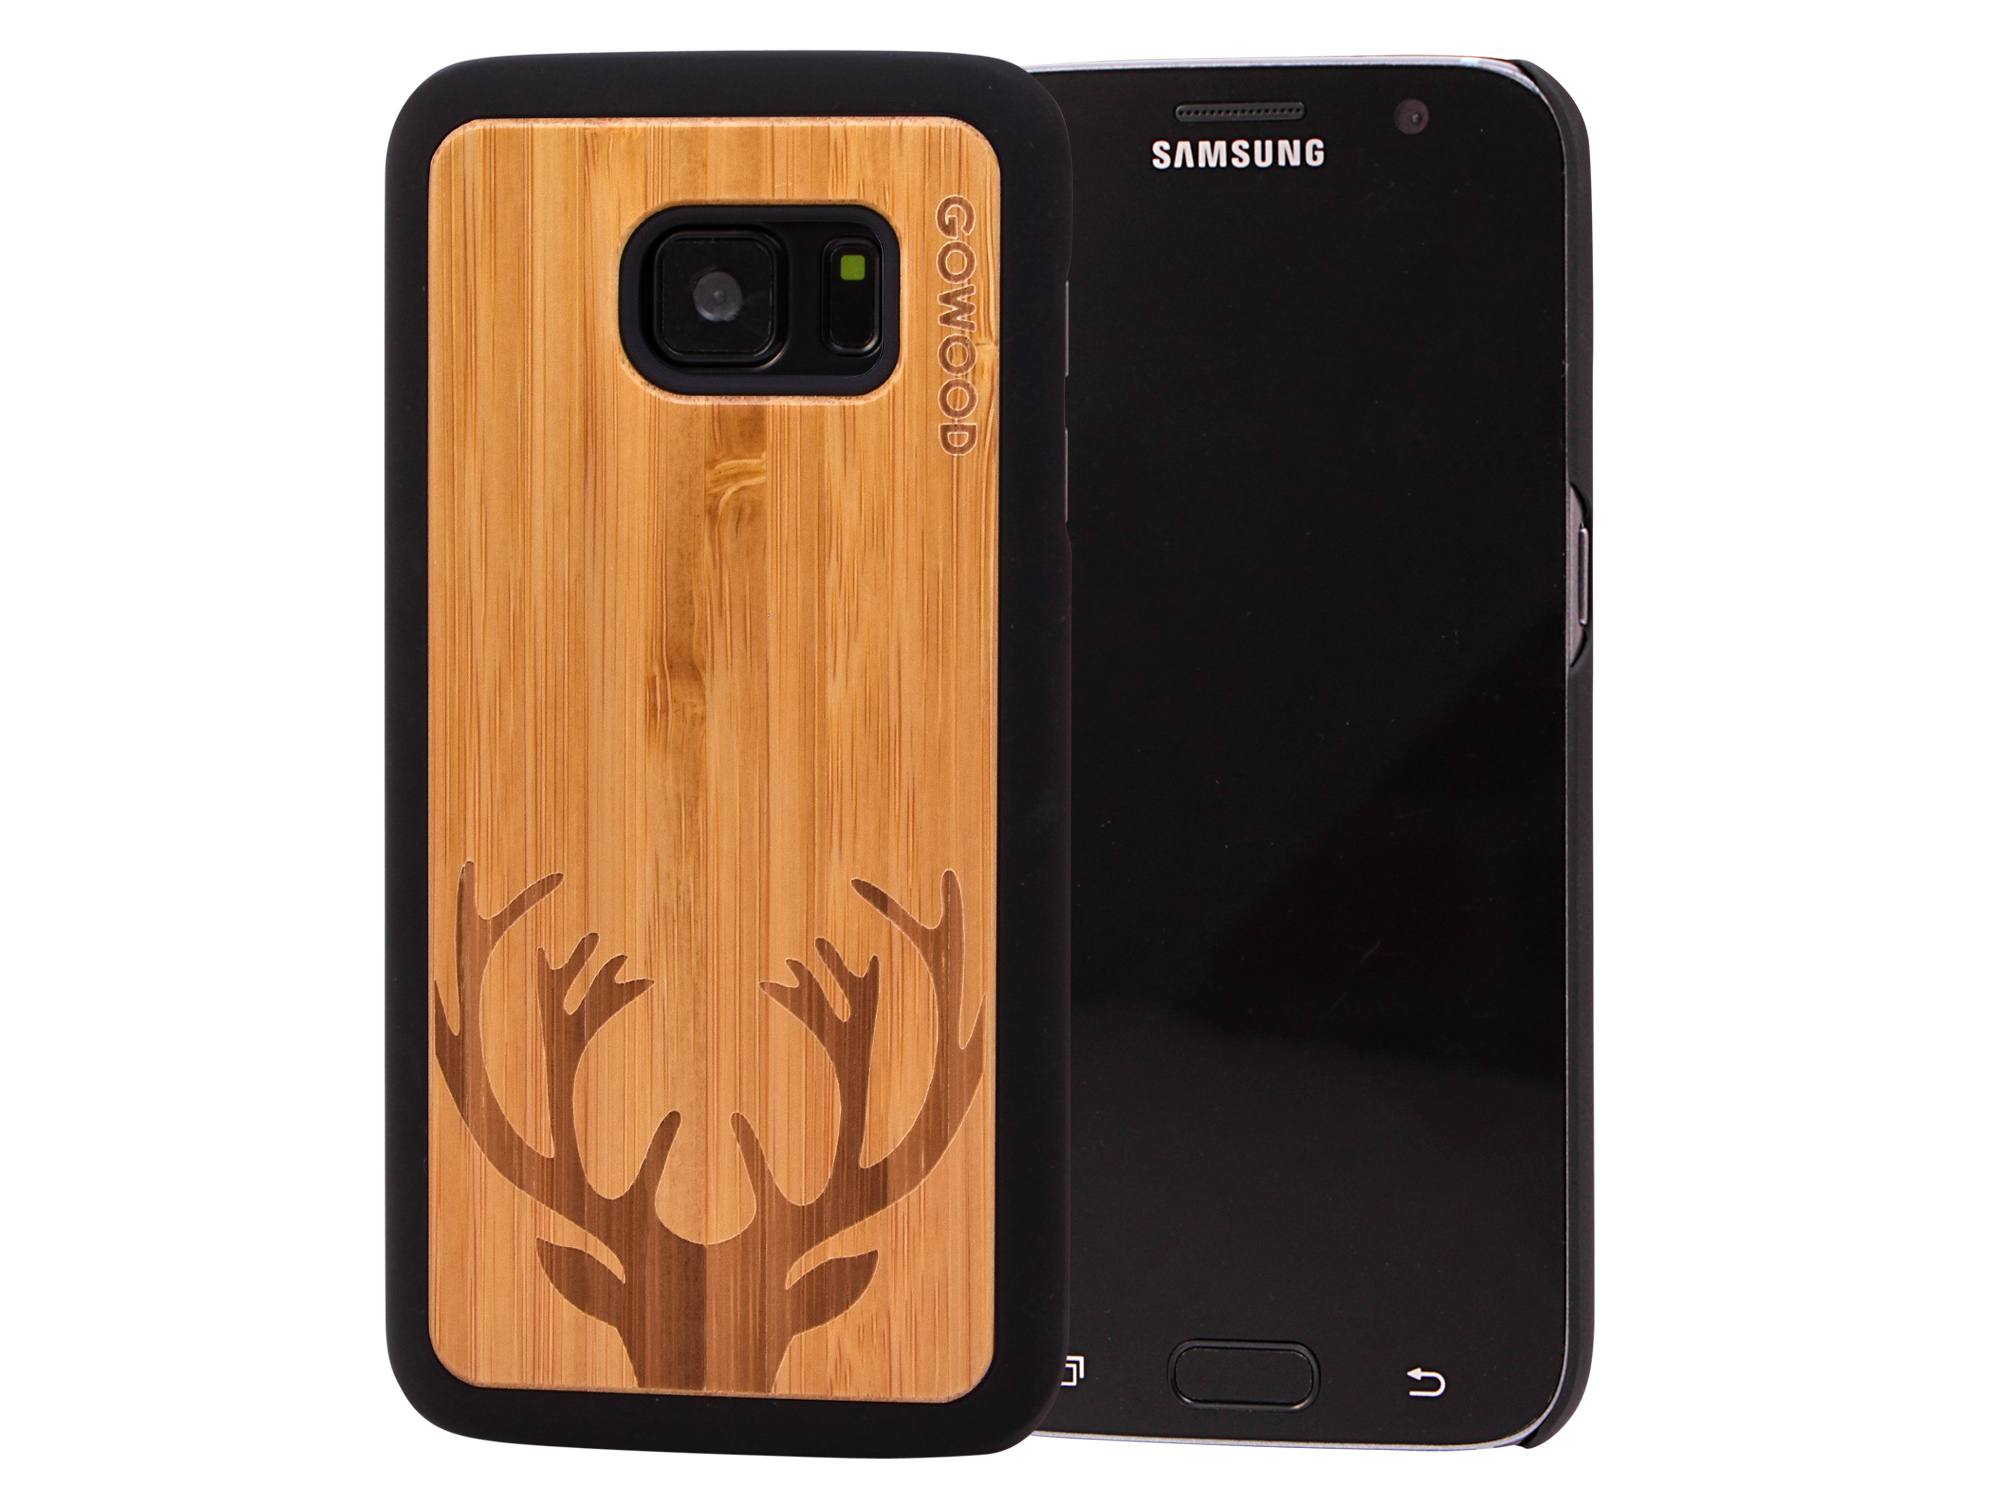 Samsung Galaxy S7 wood case